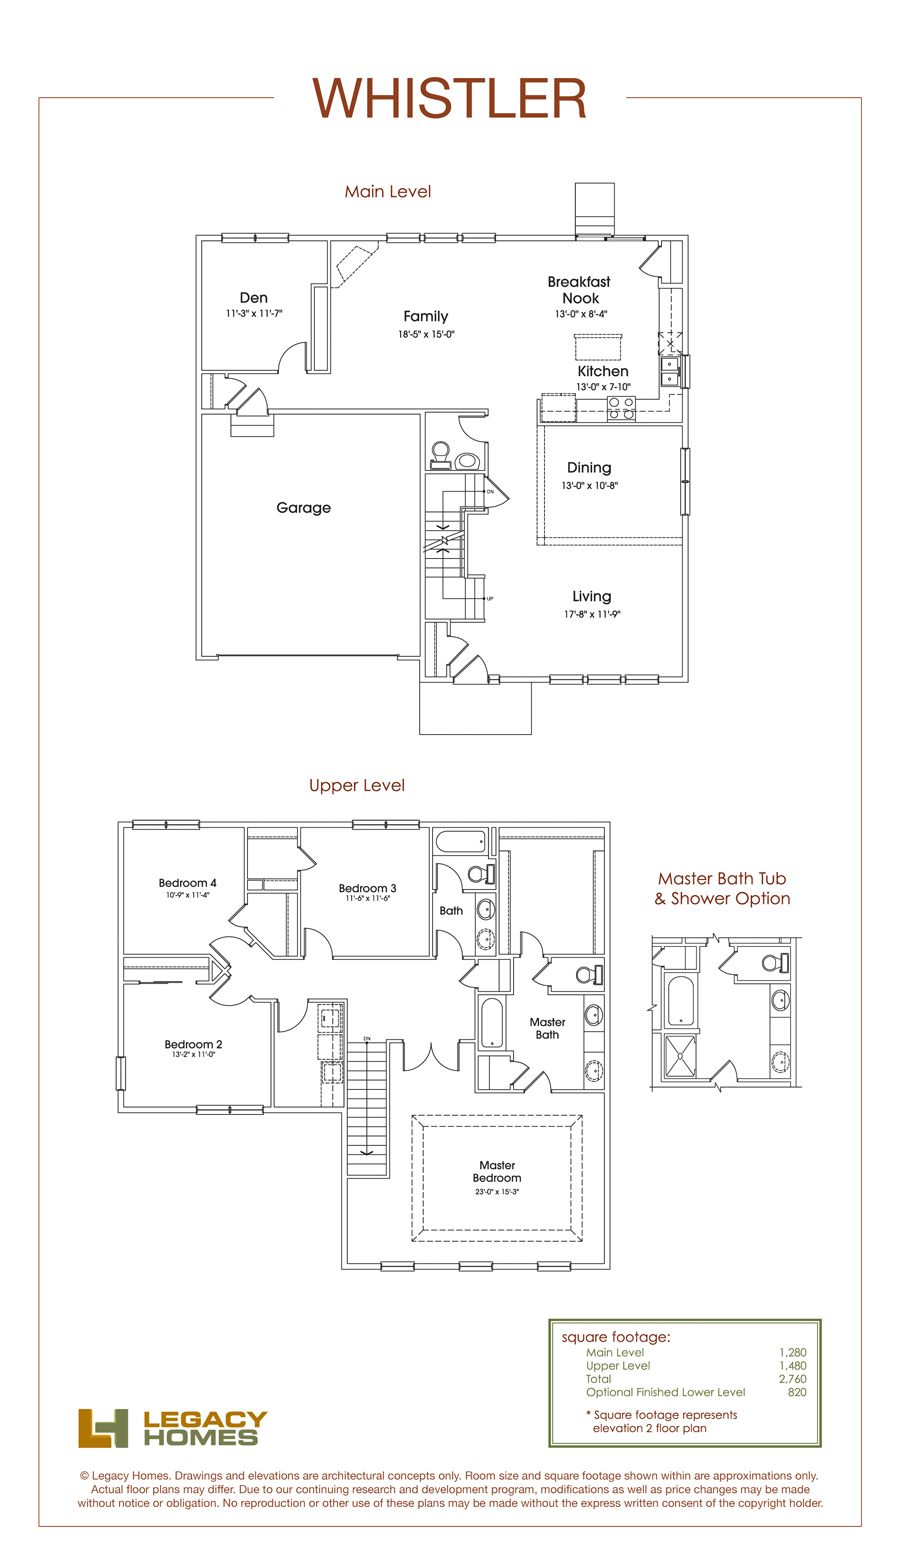 Whistler Floor Plan Legacy Homes Omaha And Lincoln Custom Floor Plans Floor Plans House Floor Plans